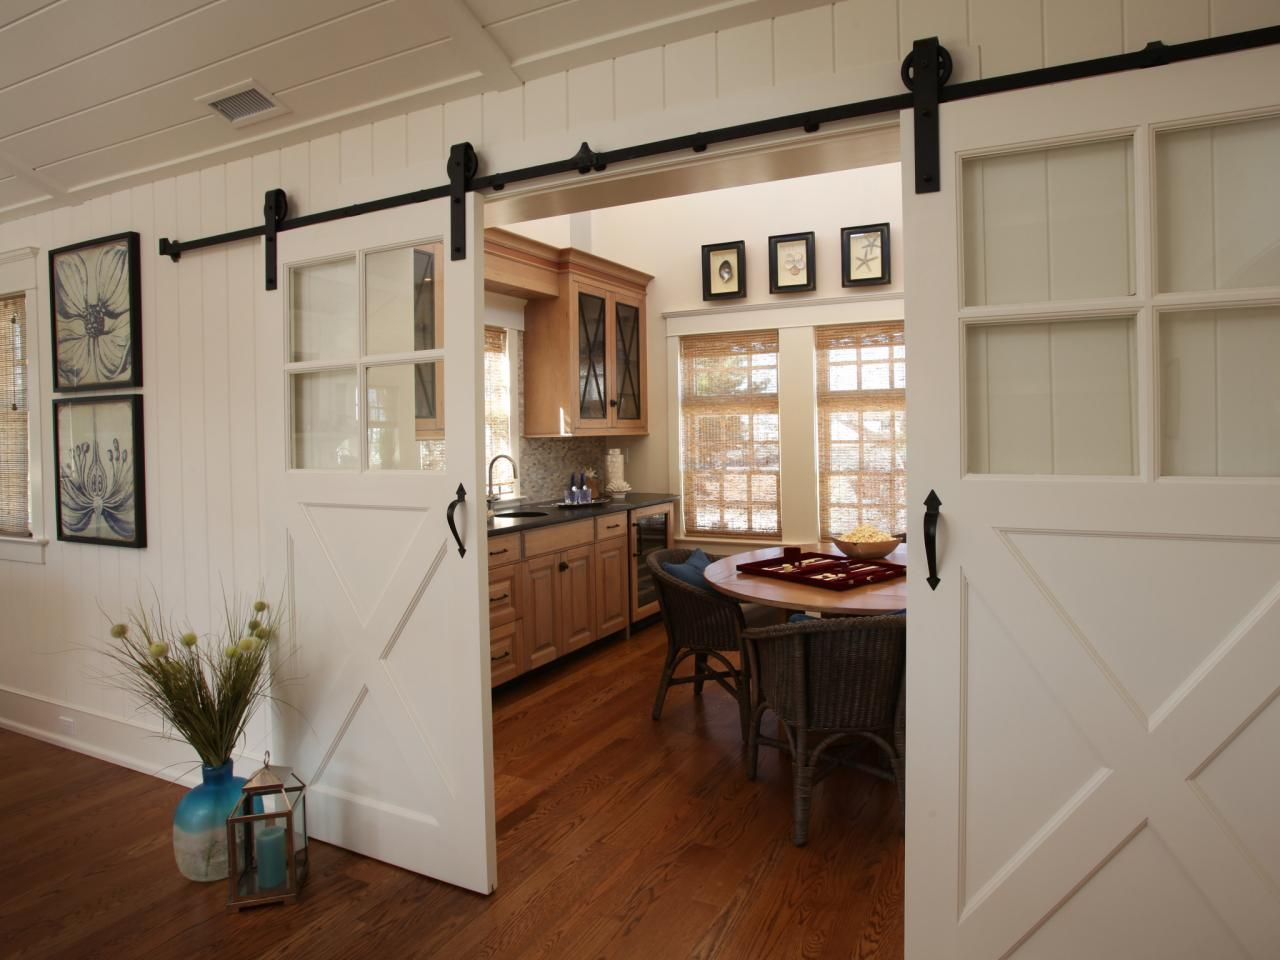 Sliding Barn Doors Offer Both Easy Access To And Privacy